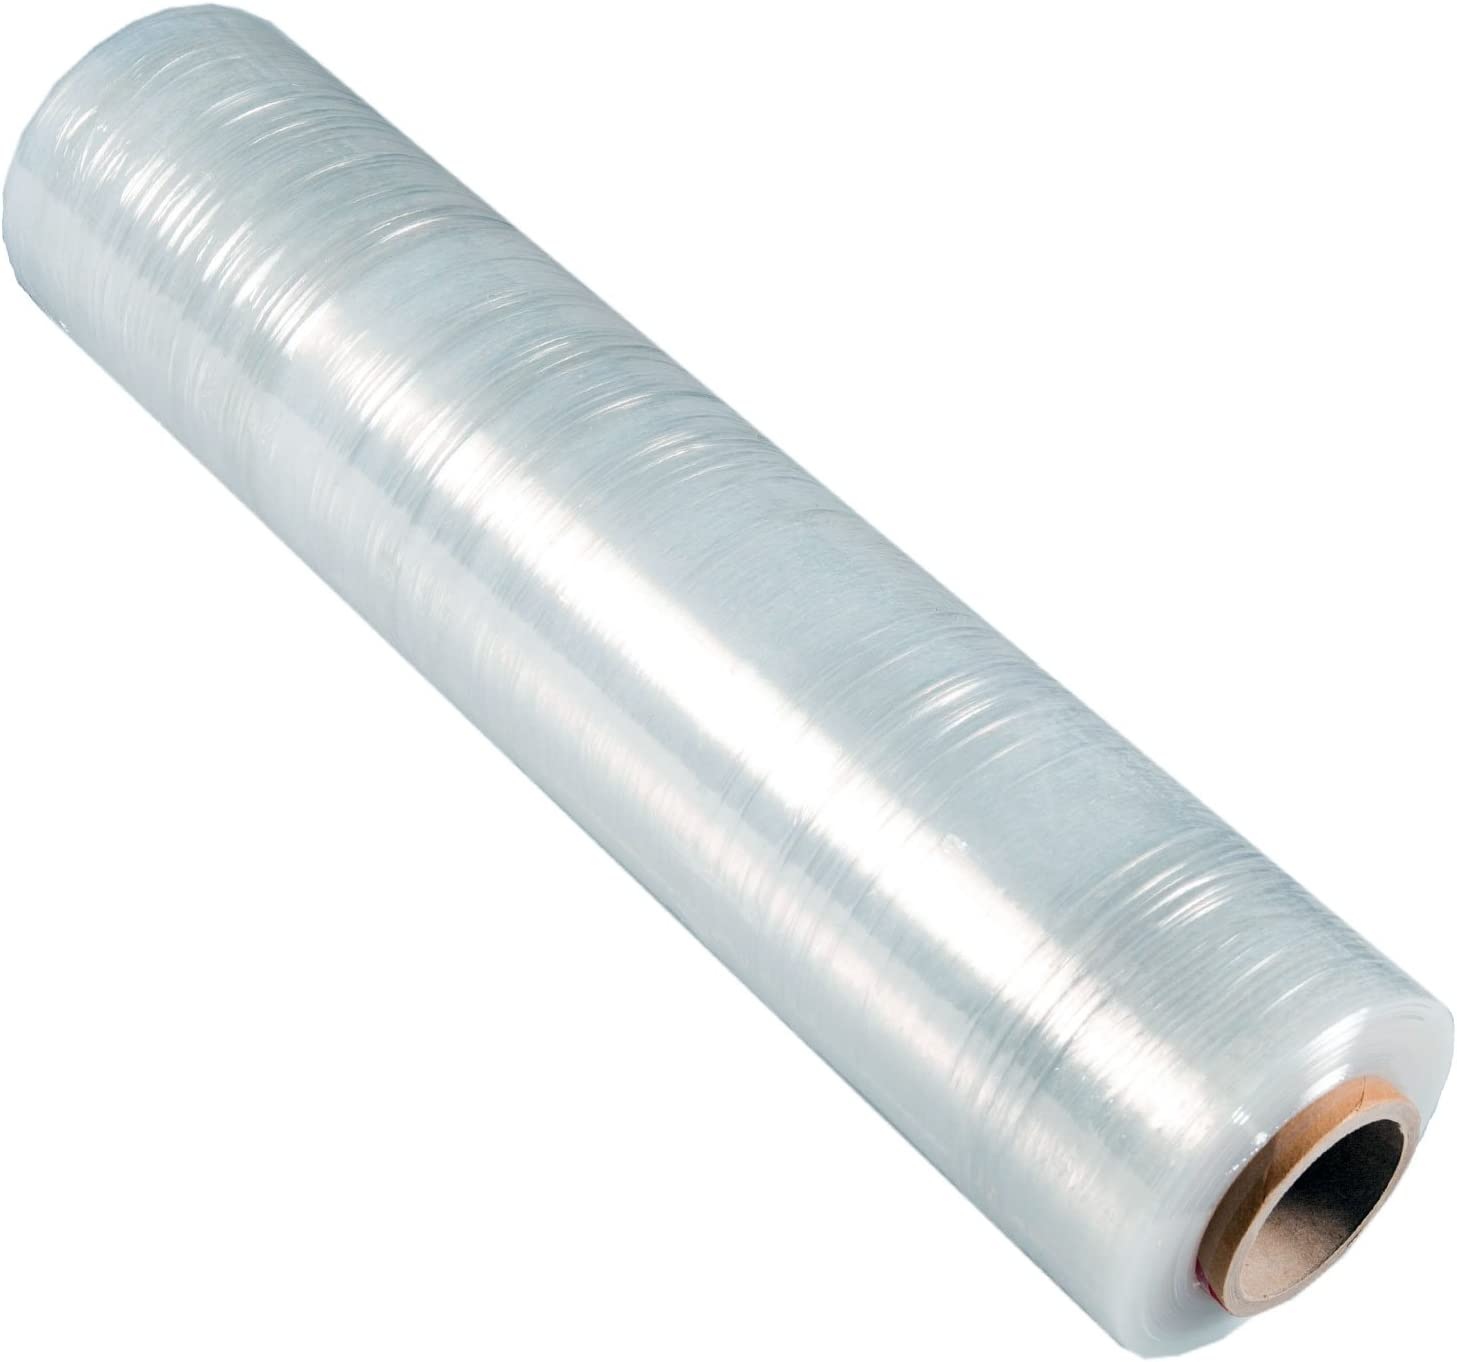 Clear 18 x 1500 Ft Per Roll LTB 2070 Stretch Wrap Film Pack of 4 70 Gauge